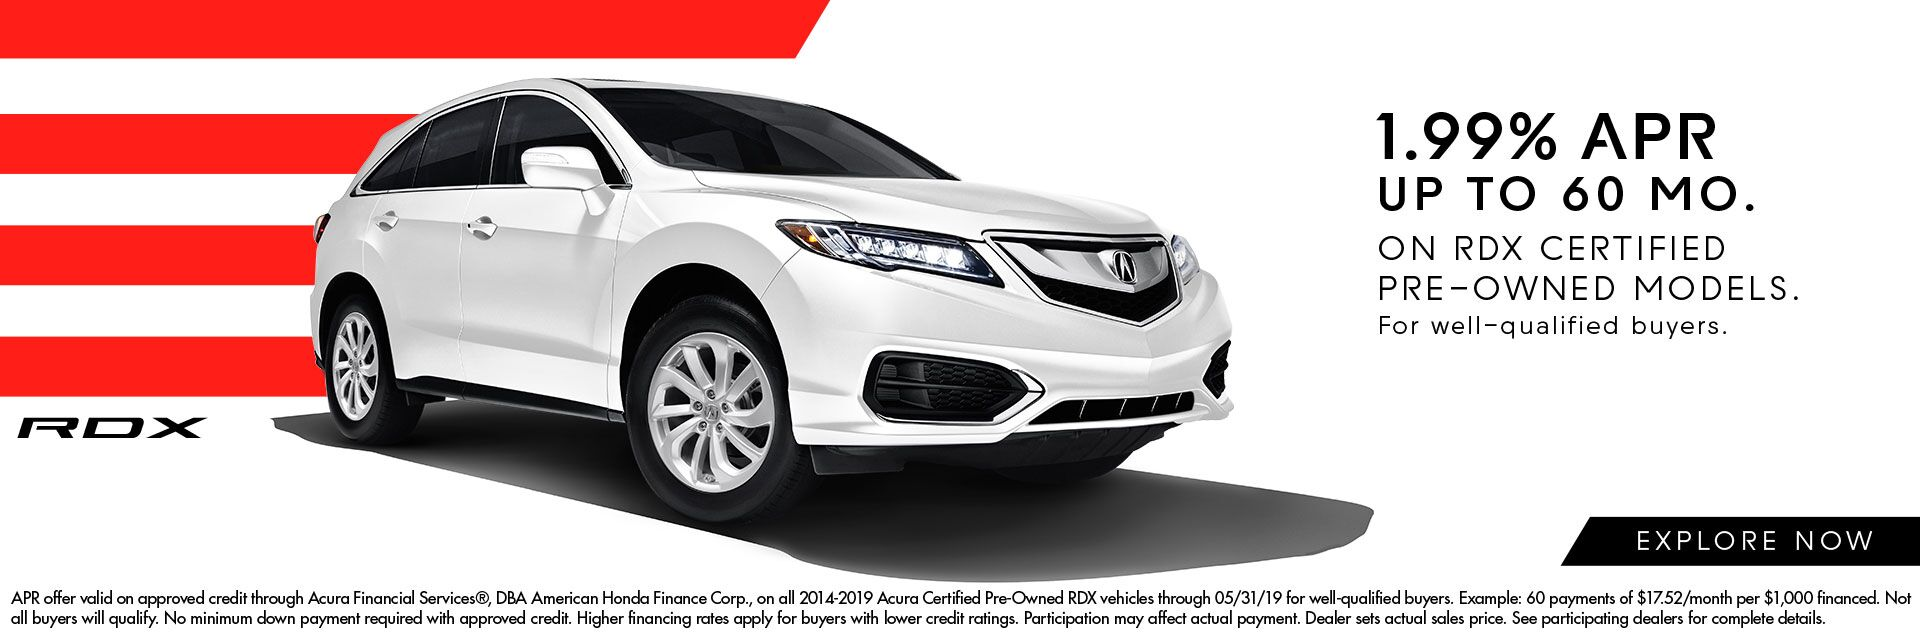 1.99% APR Certified Incentives at Acura of Modesto